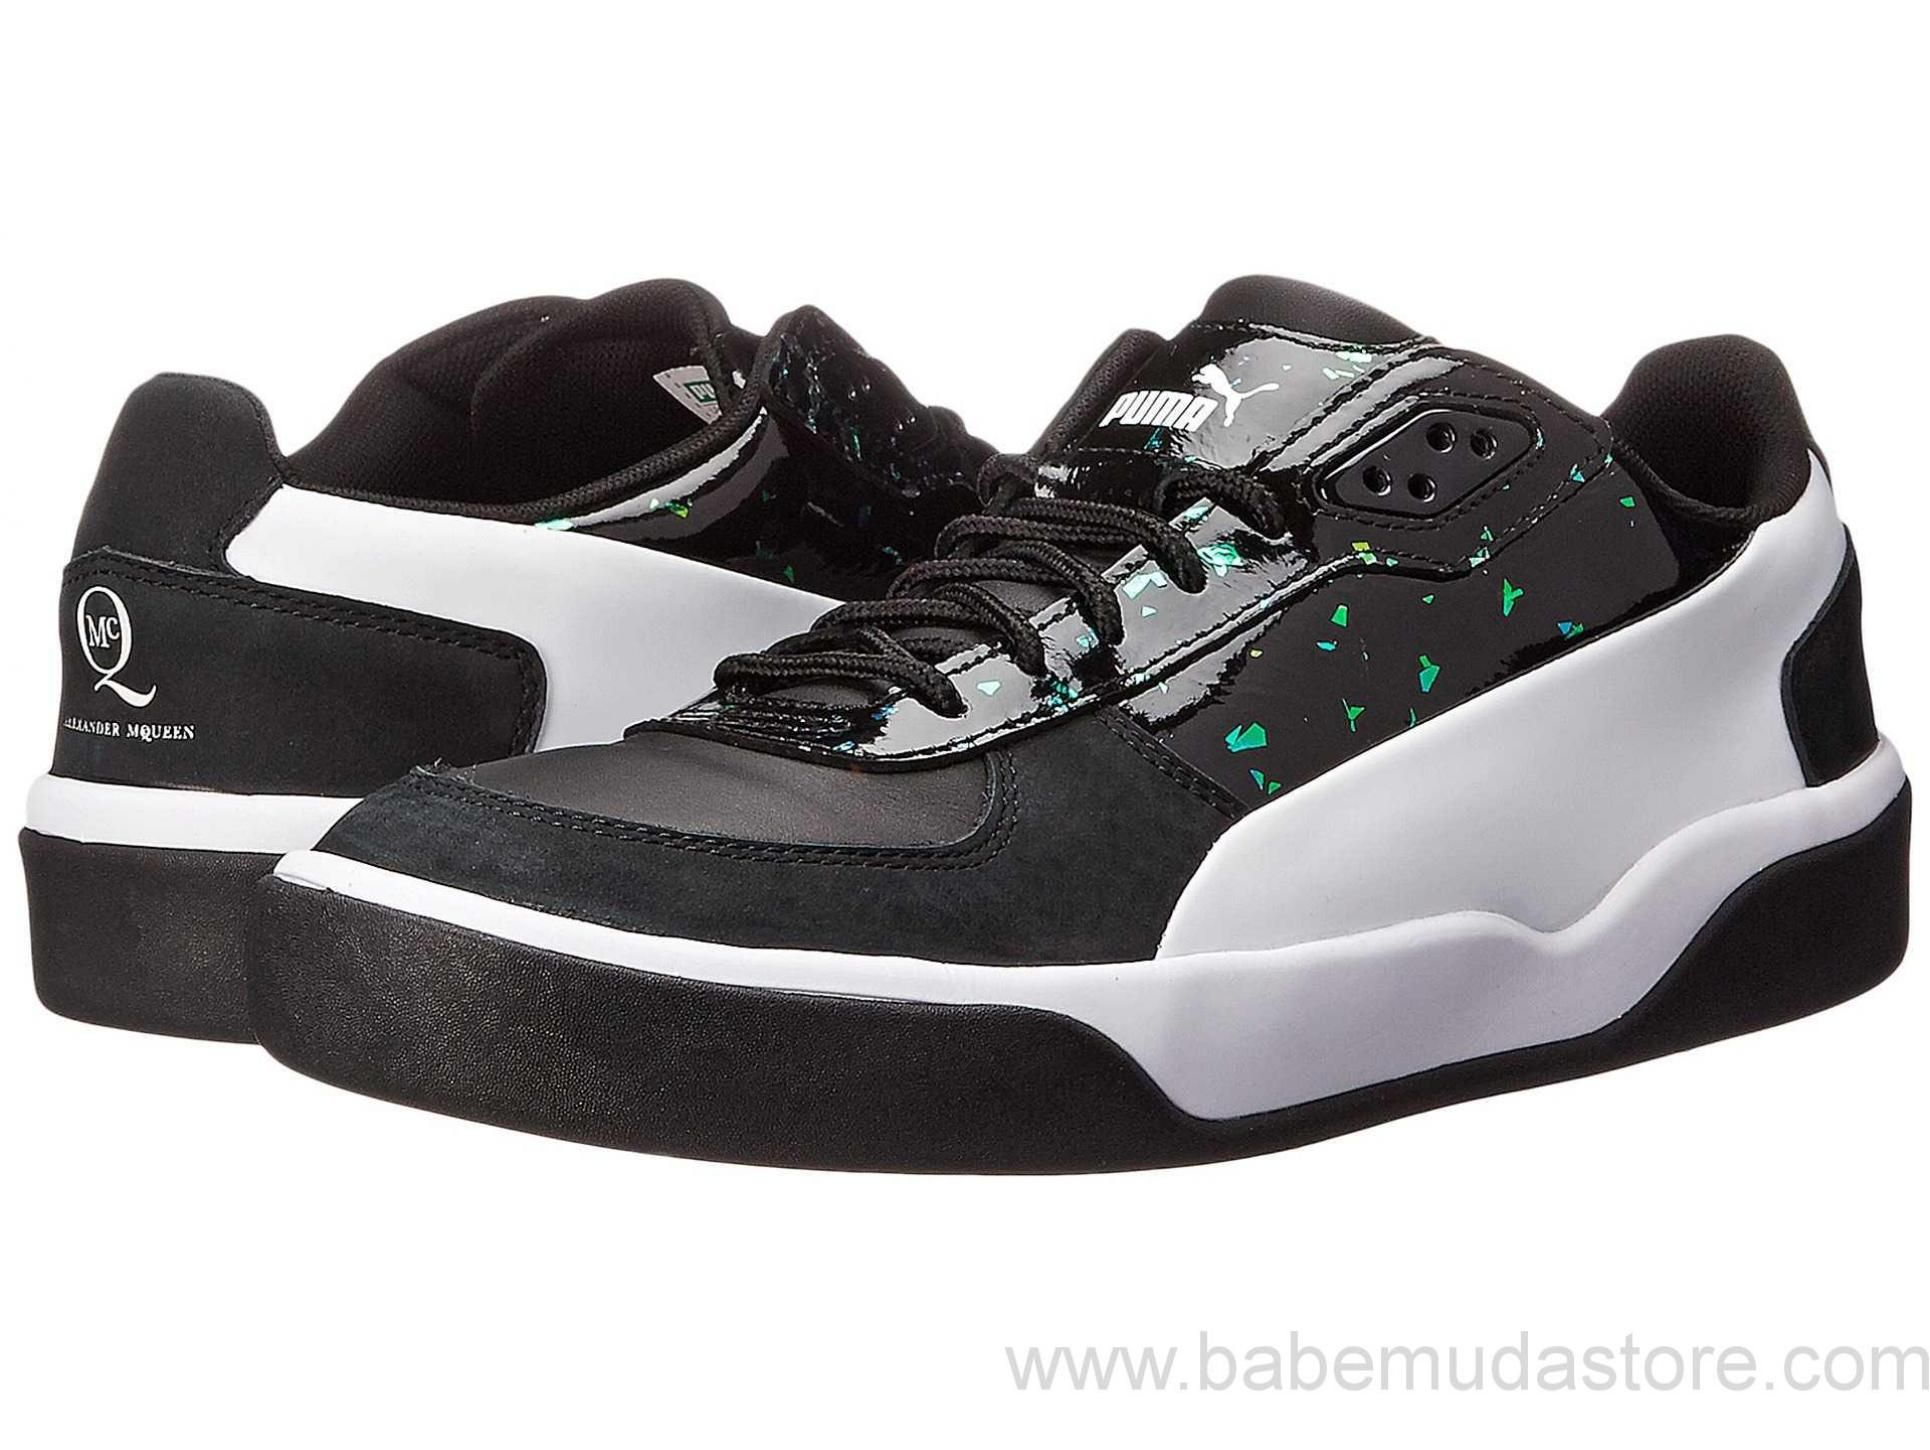 Mens Shoes PUMA Sport Fashion MCQ Brace Low Black/Flame Scarlet